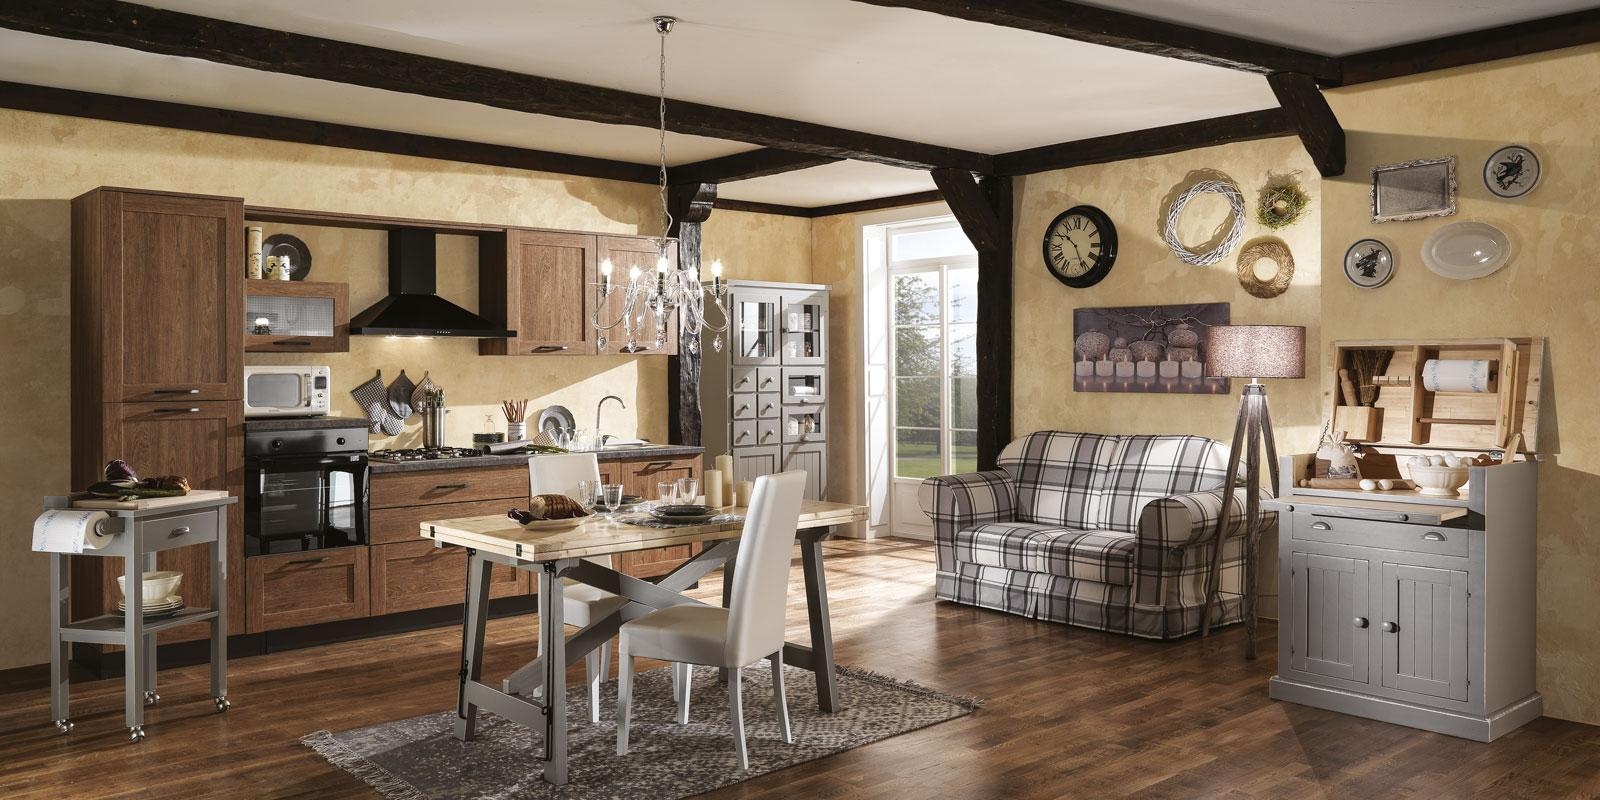 Casa in stile country protagonisti legno e materiali for Casa design arredamenti